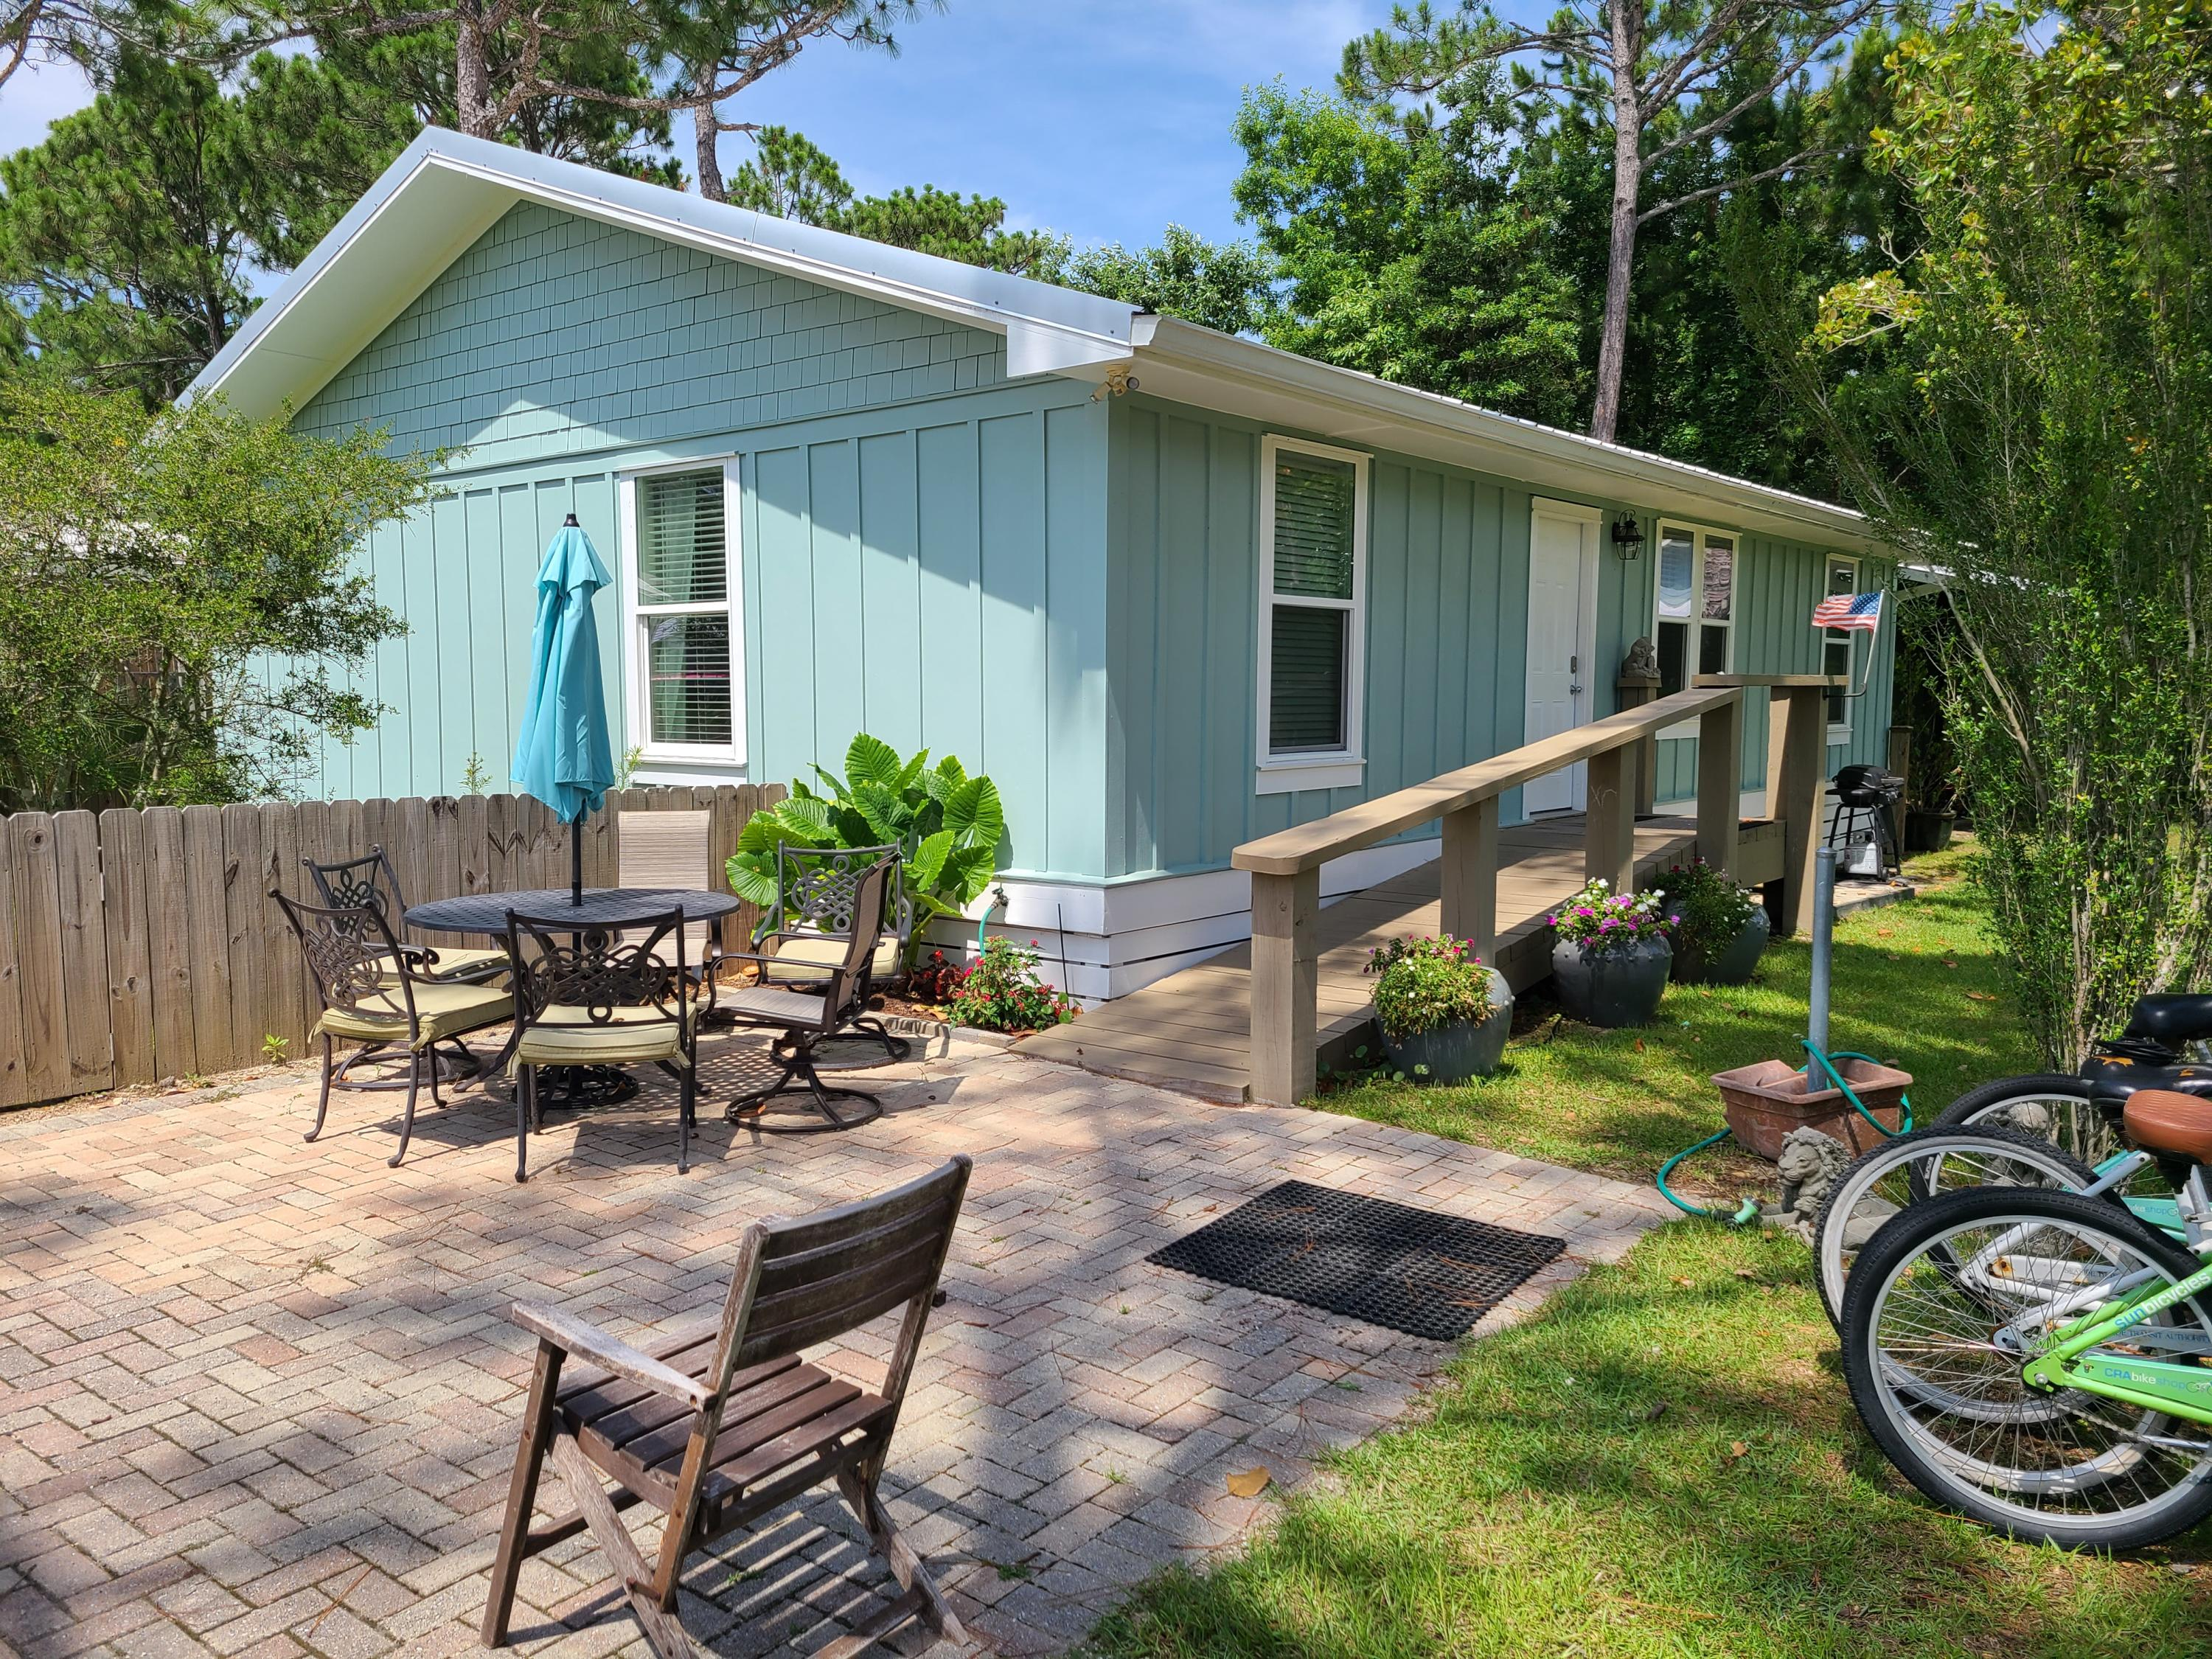 Fully furnished, rental ready, this 3 bed, 2 bath home in Seagrove is on a large lot with room to ad